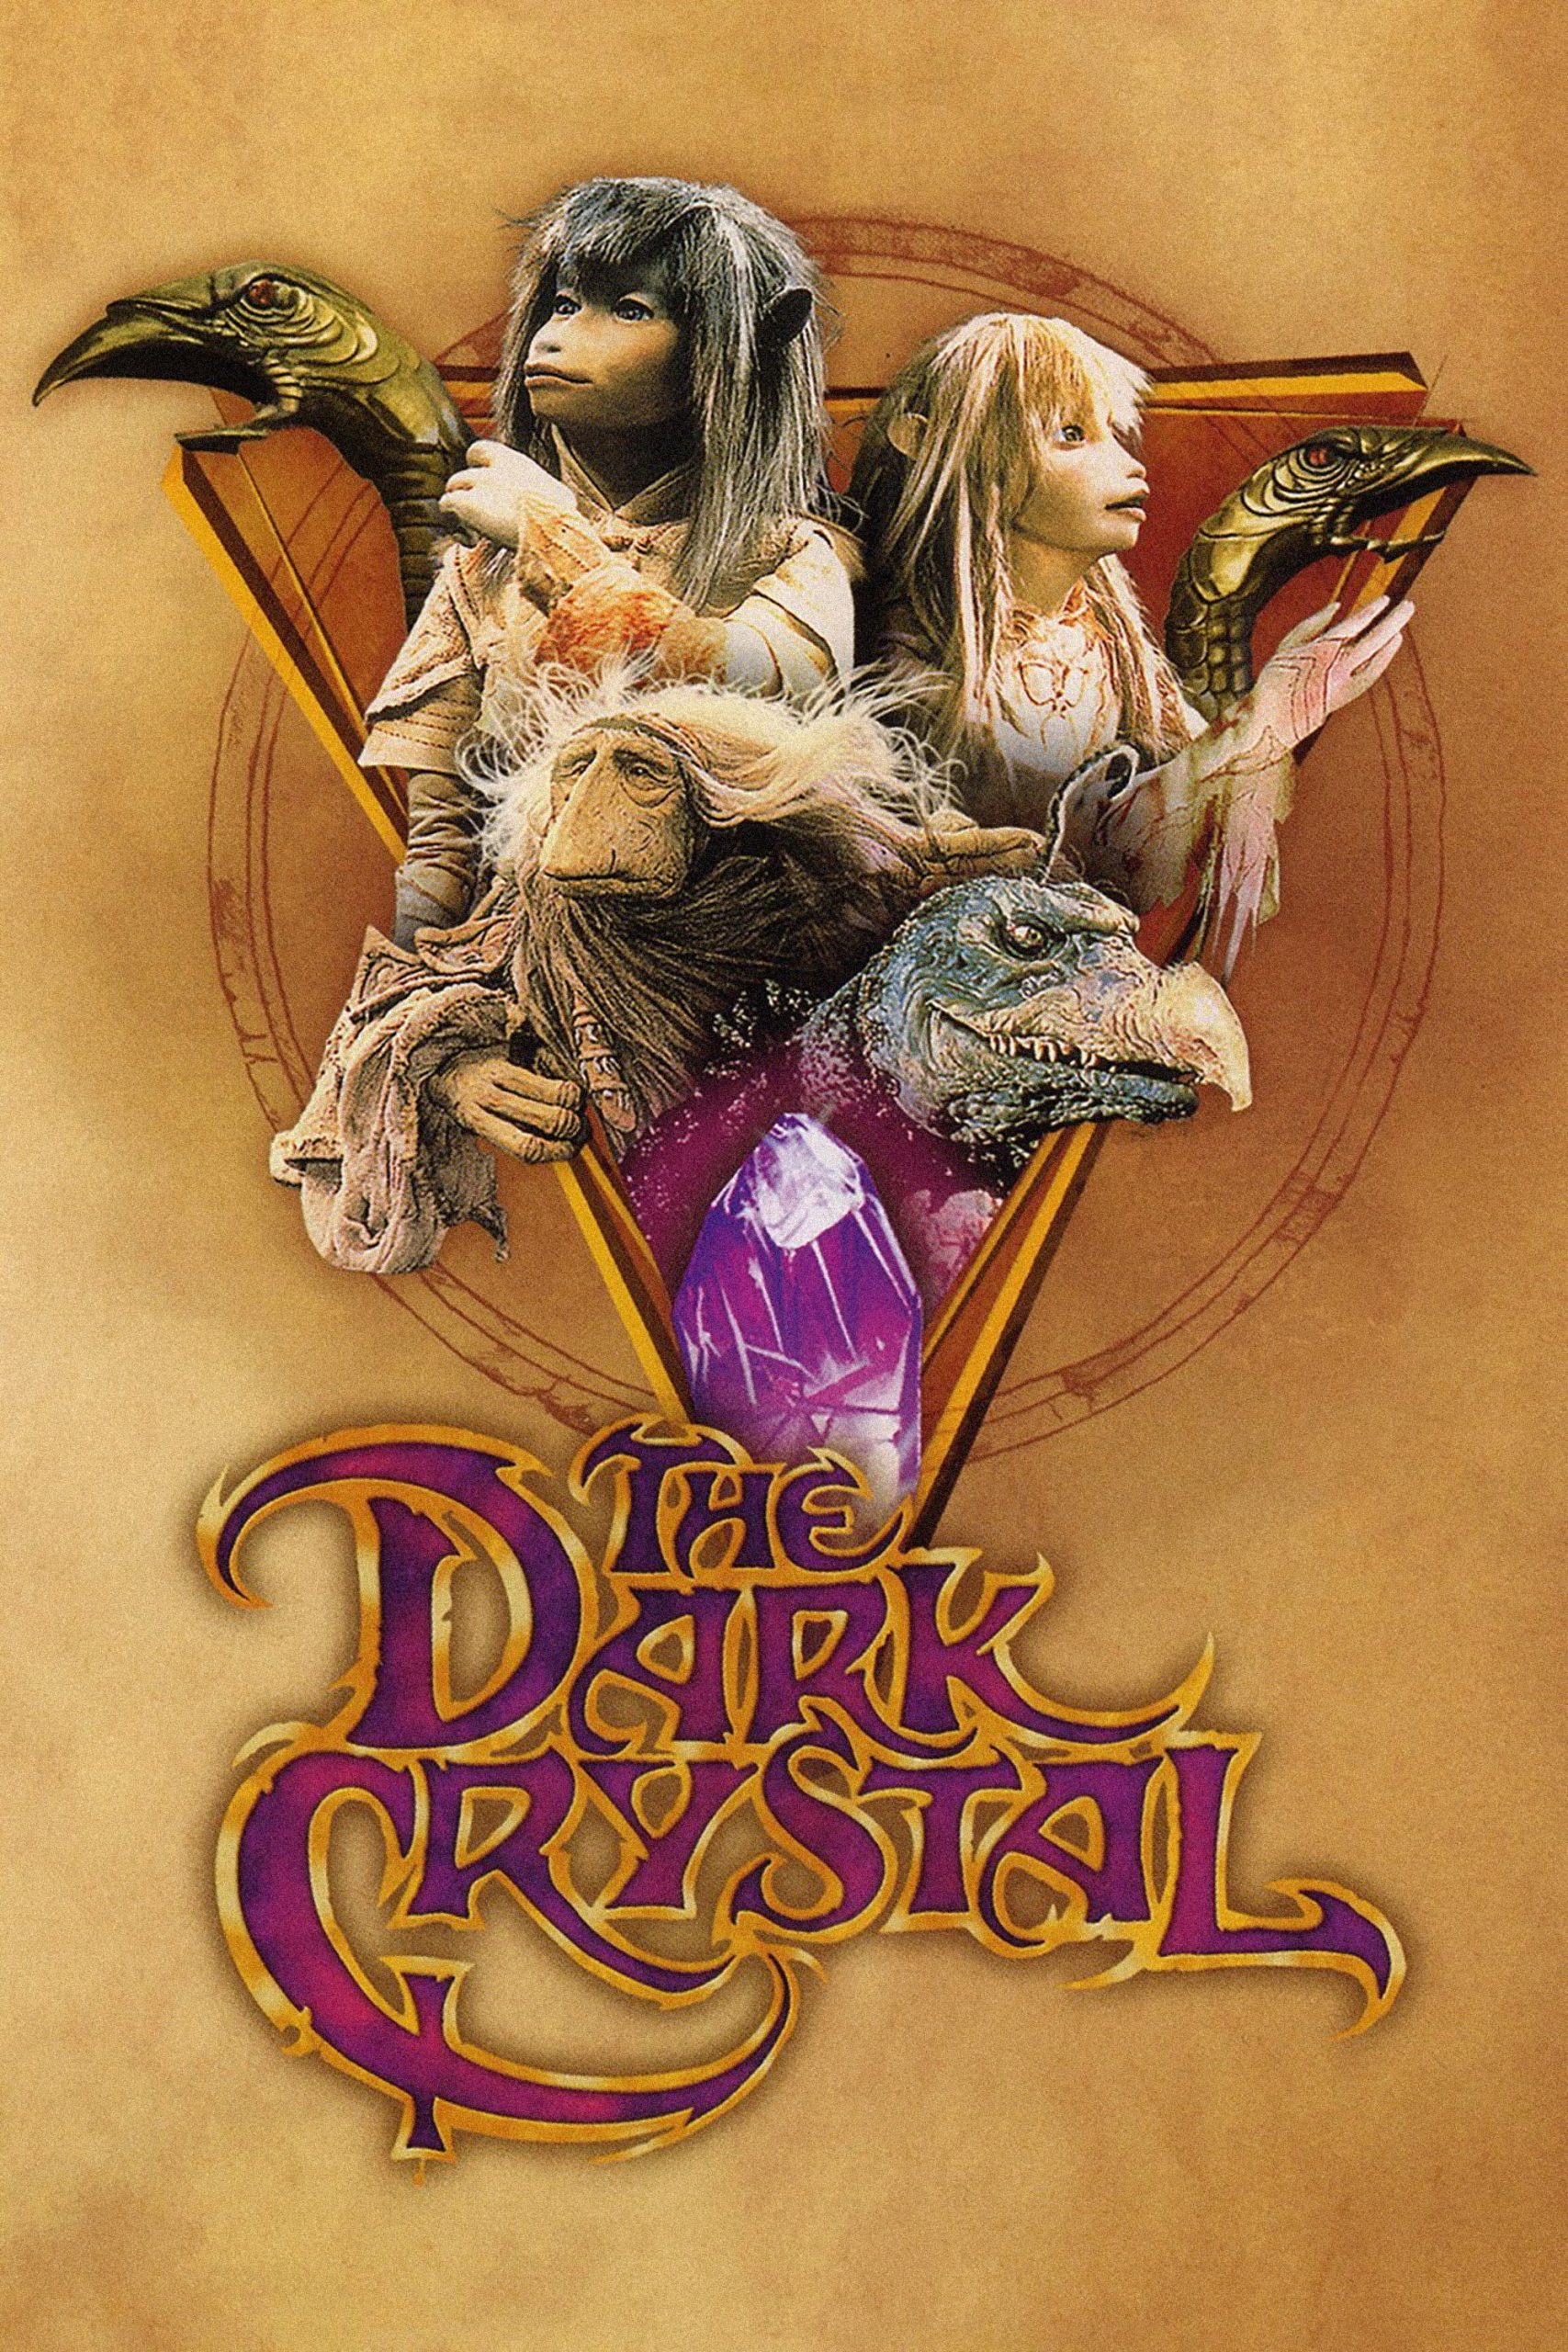 Poster for The Dark Crystal